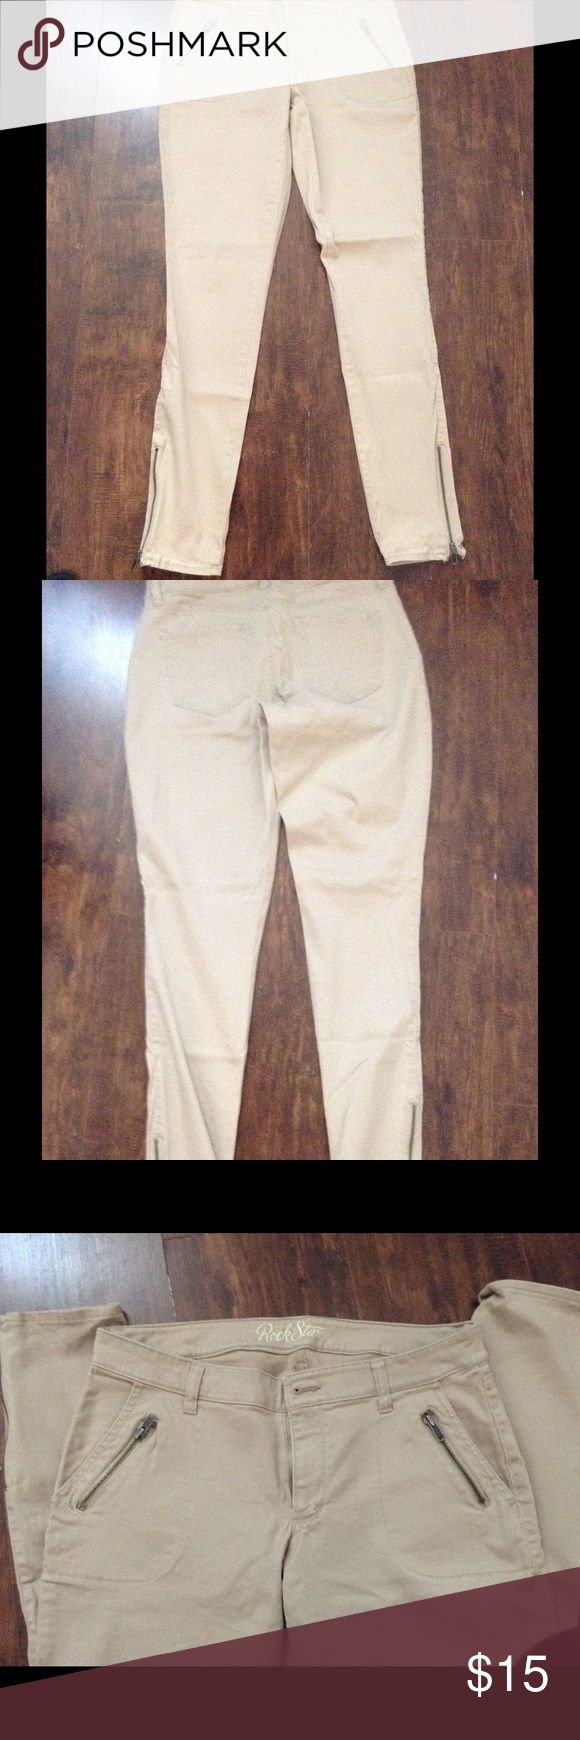 Old Navy khaki skinny jeans size 12 TALL Excellent condition, new within tags Old Navy Jeans Skinny